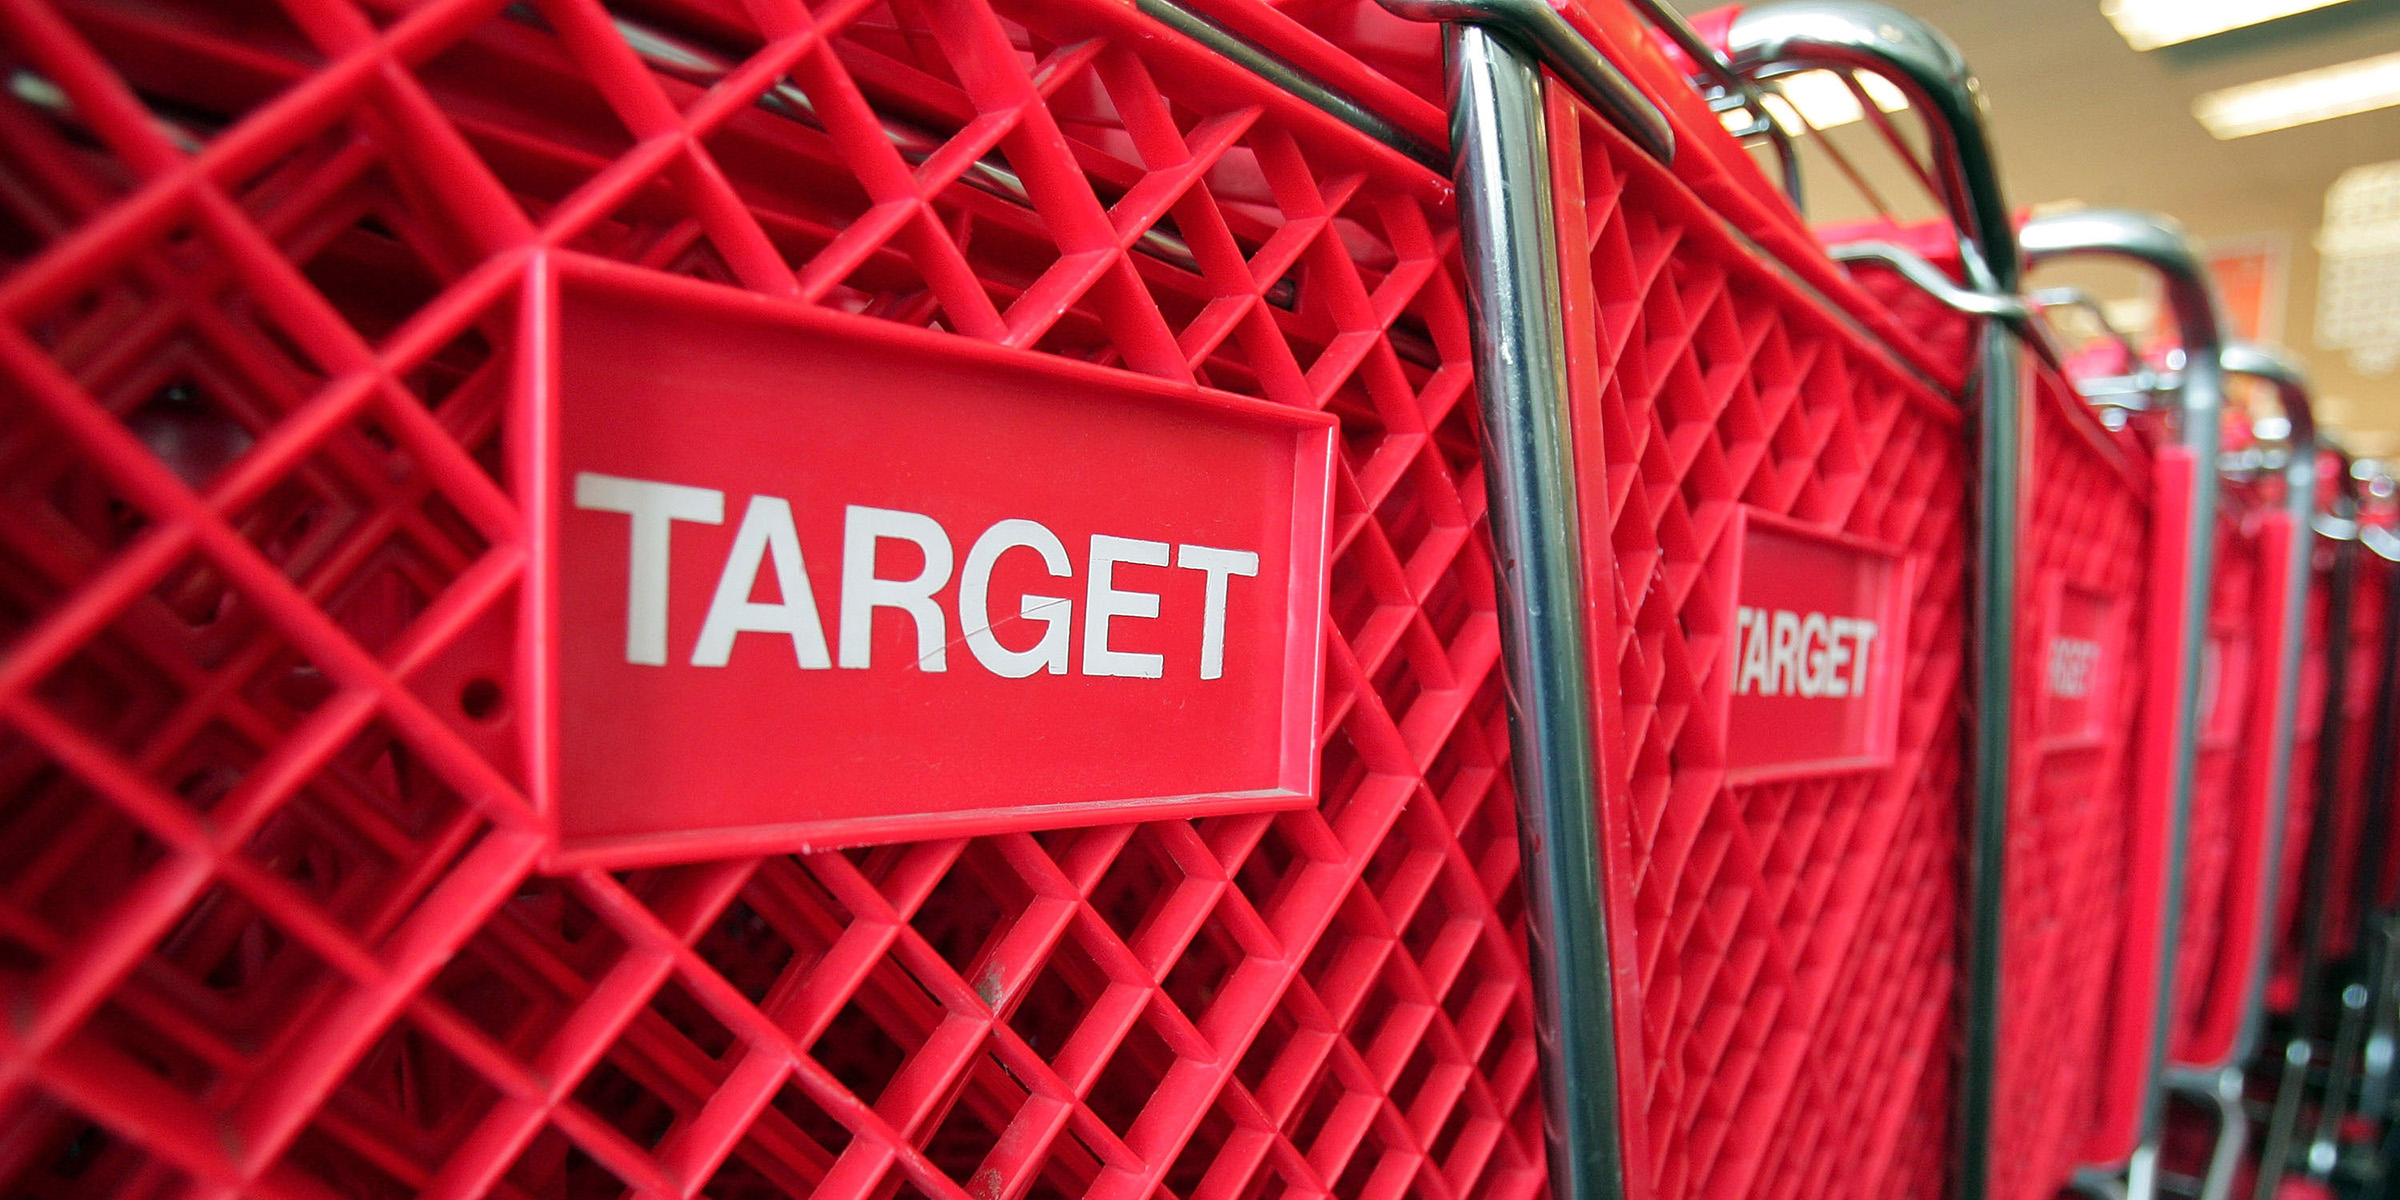 Target Announces New Hours Due To Coronavirus Crisis